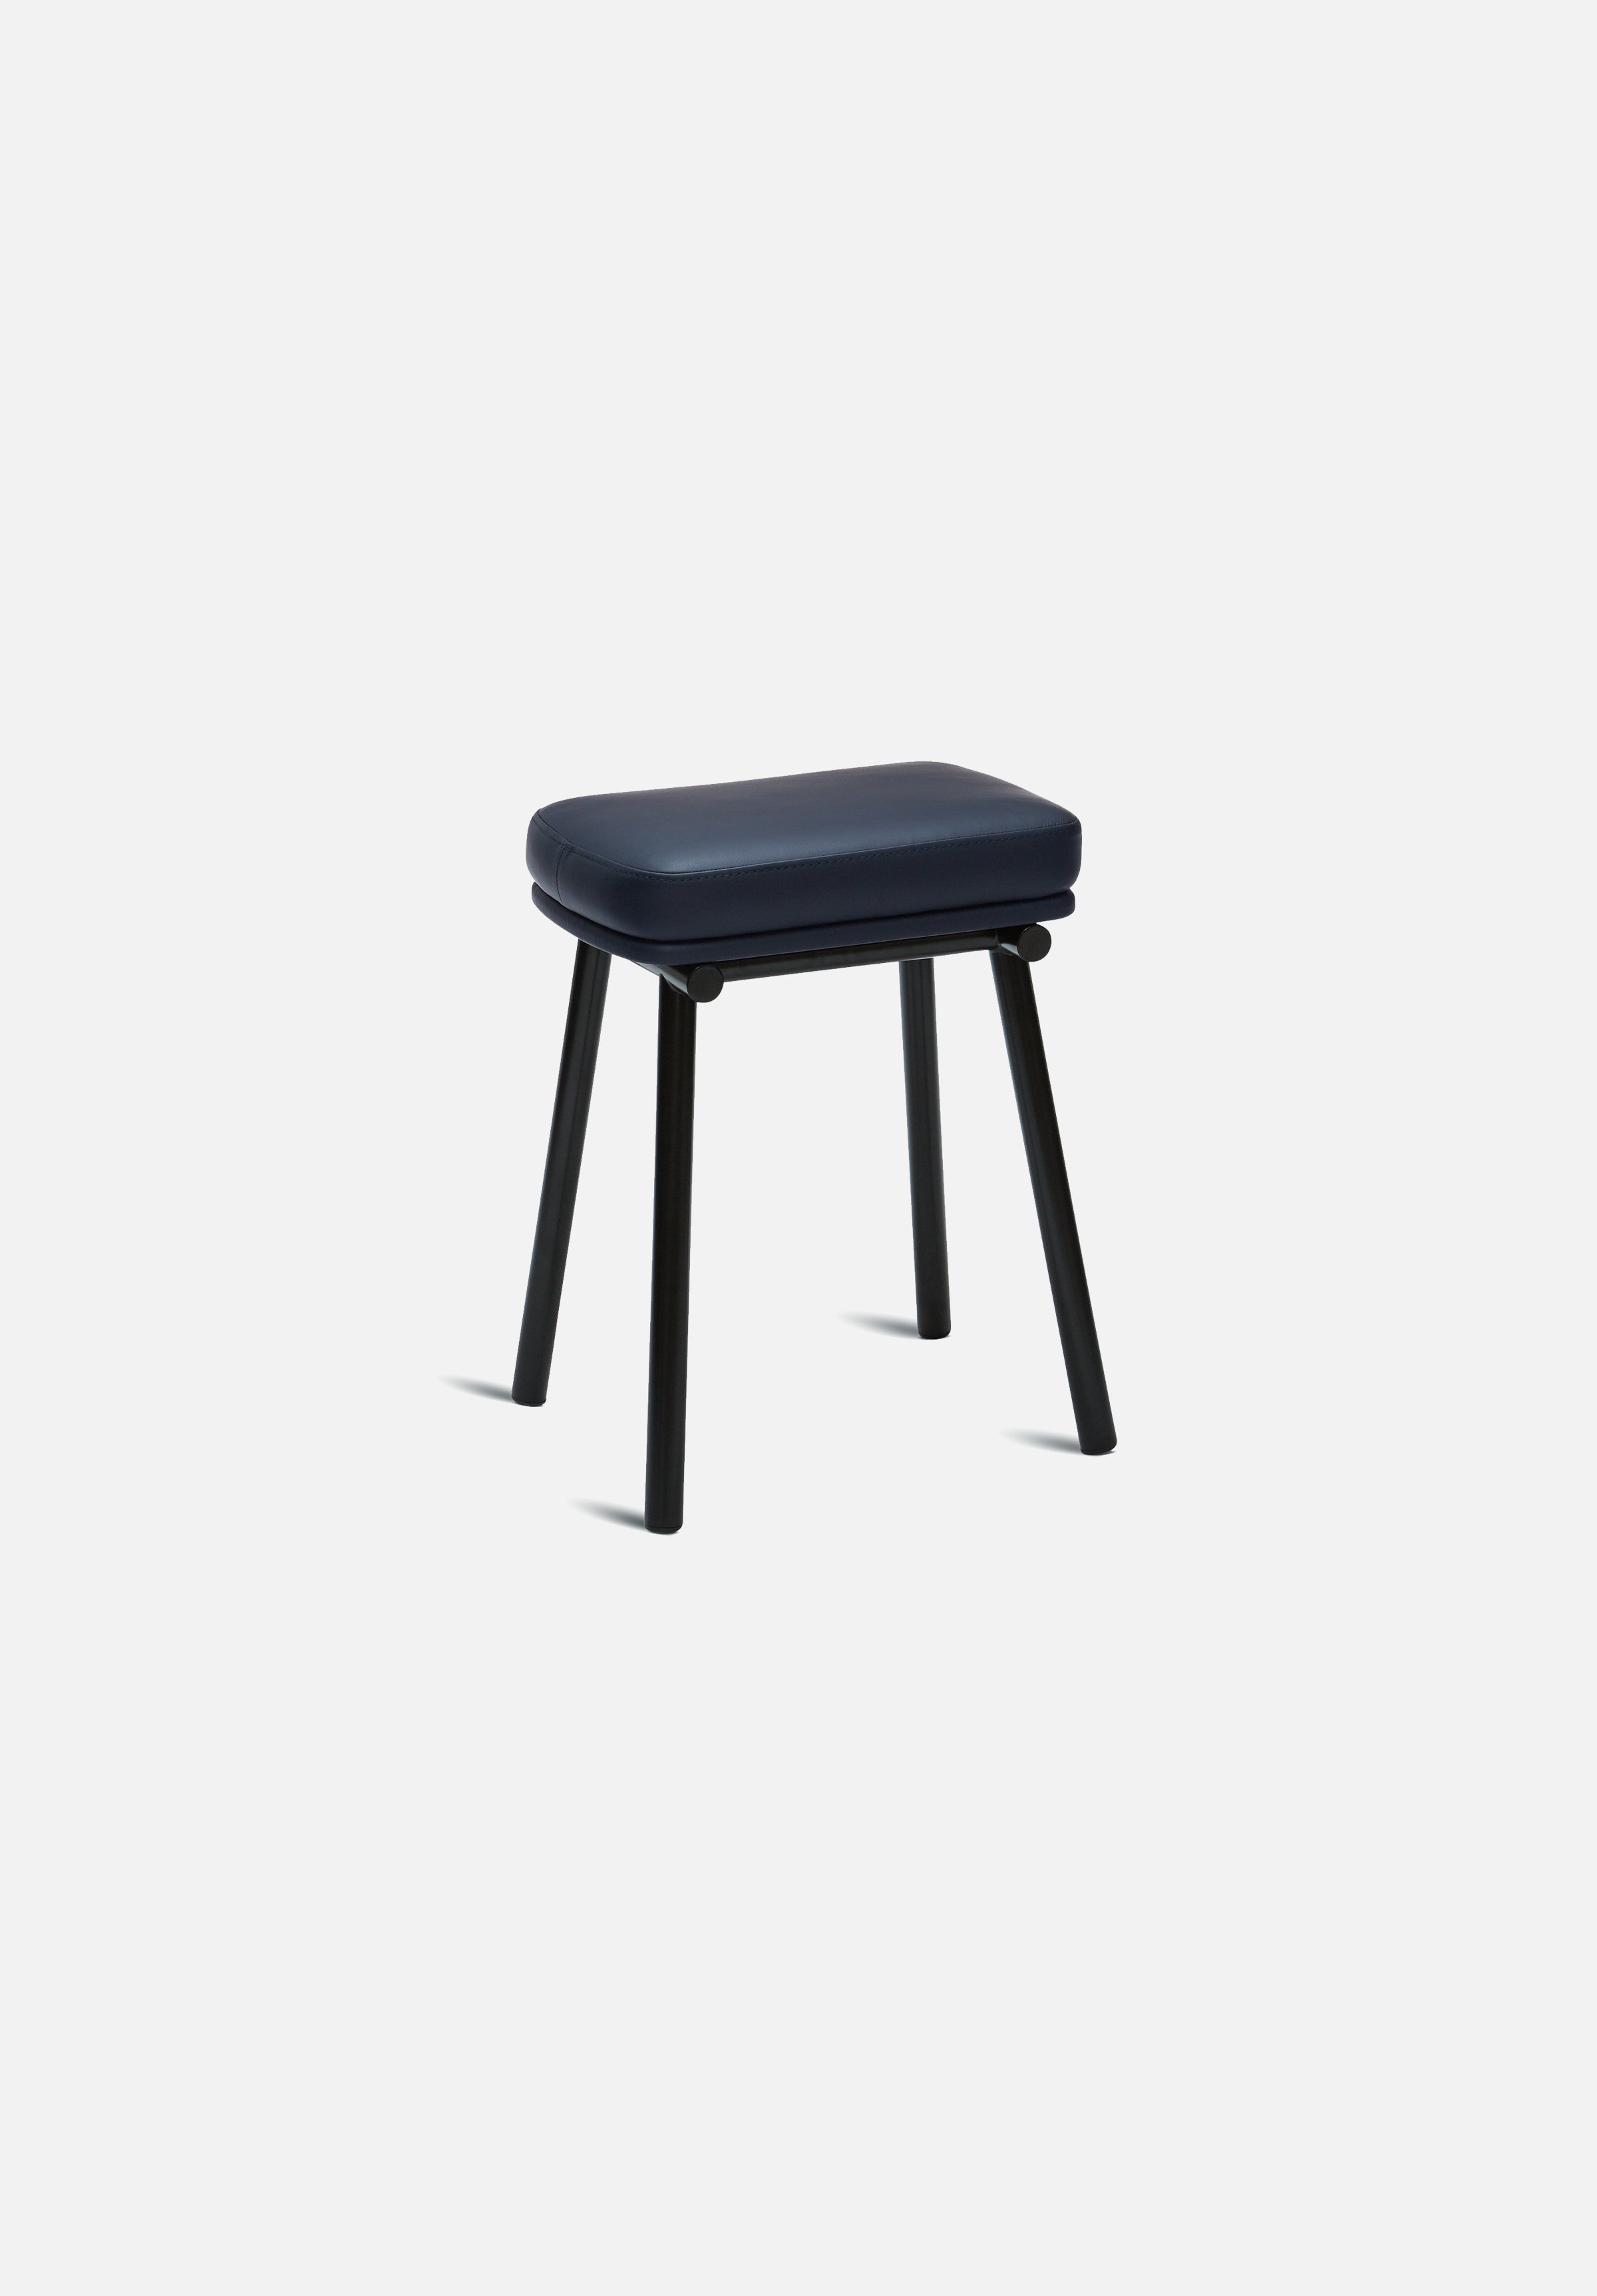 Tubby Stool-Faye Toogood-Please Wait to be Seated-Navy Leather-Average